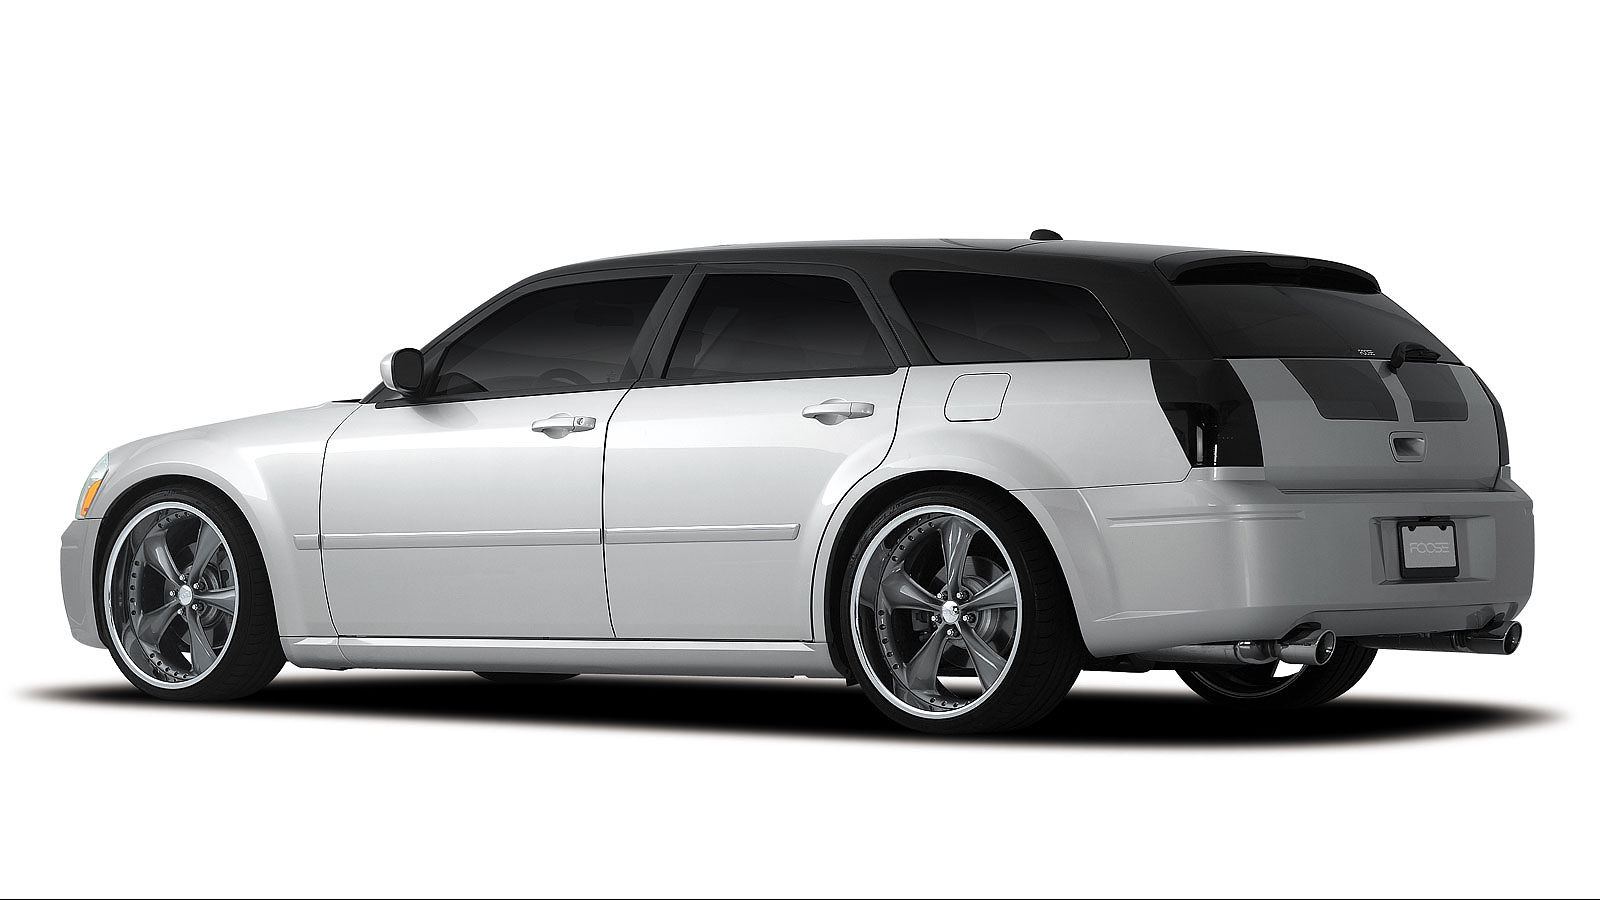 Dodge Magnum 2004 Review Amazing Pictures And Images Look At The Car